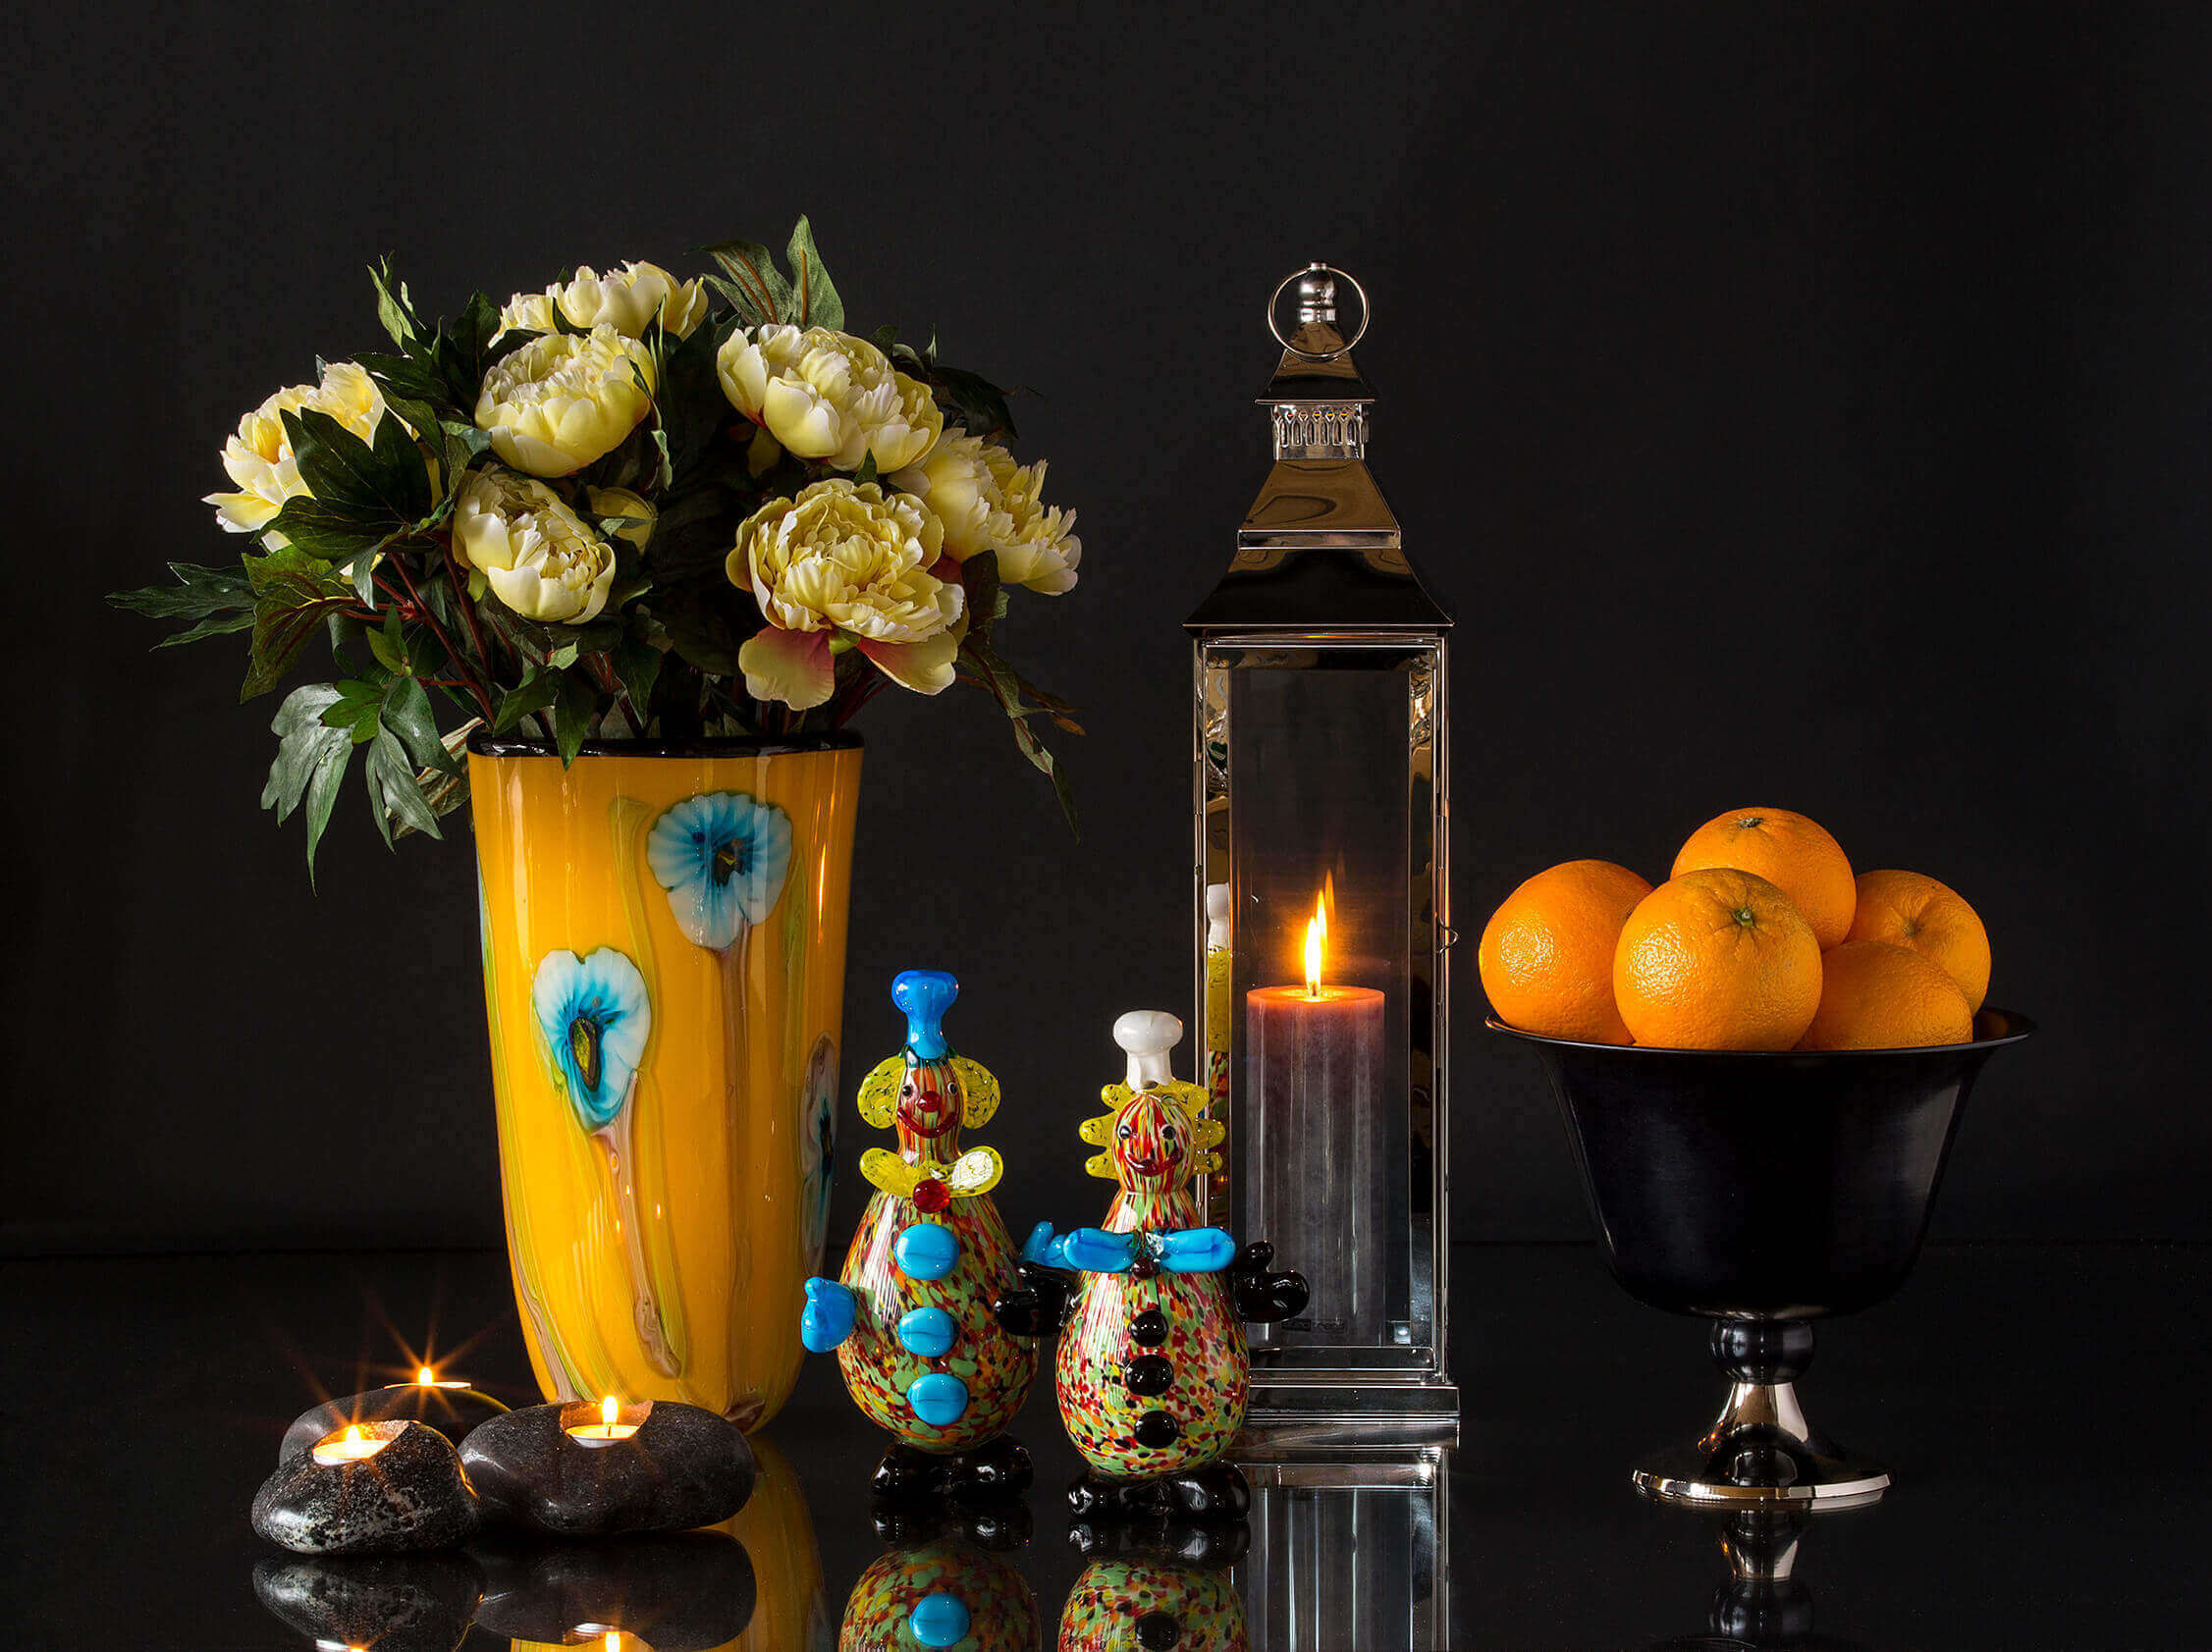 Two clown figurines in glass in front of yellow glass vase, lantern and fruit bowl